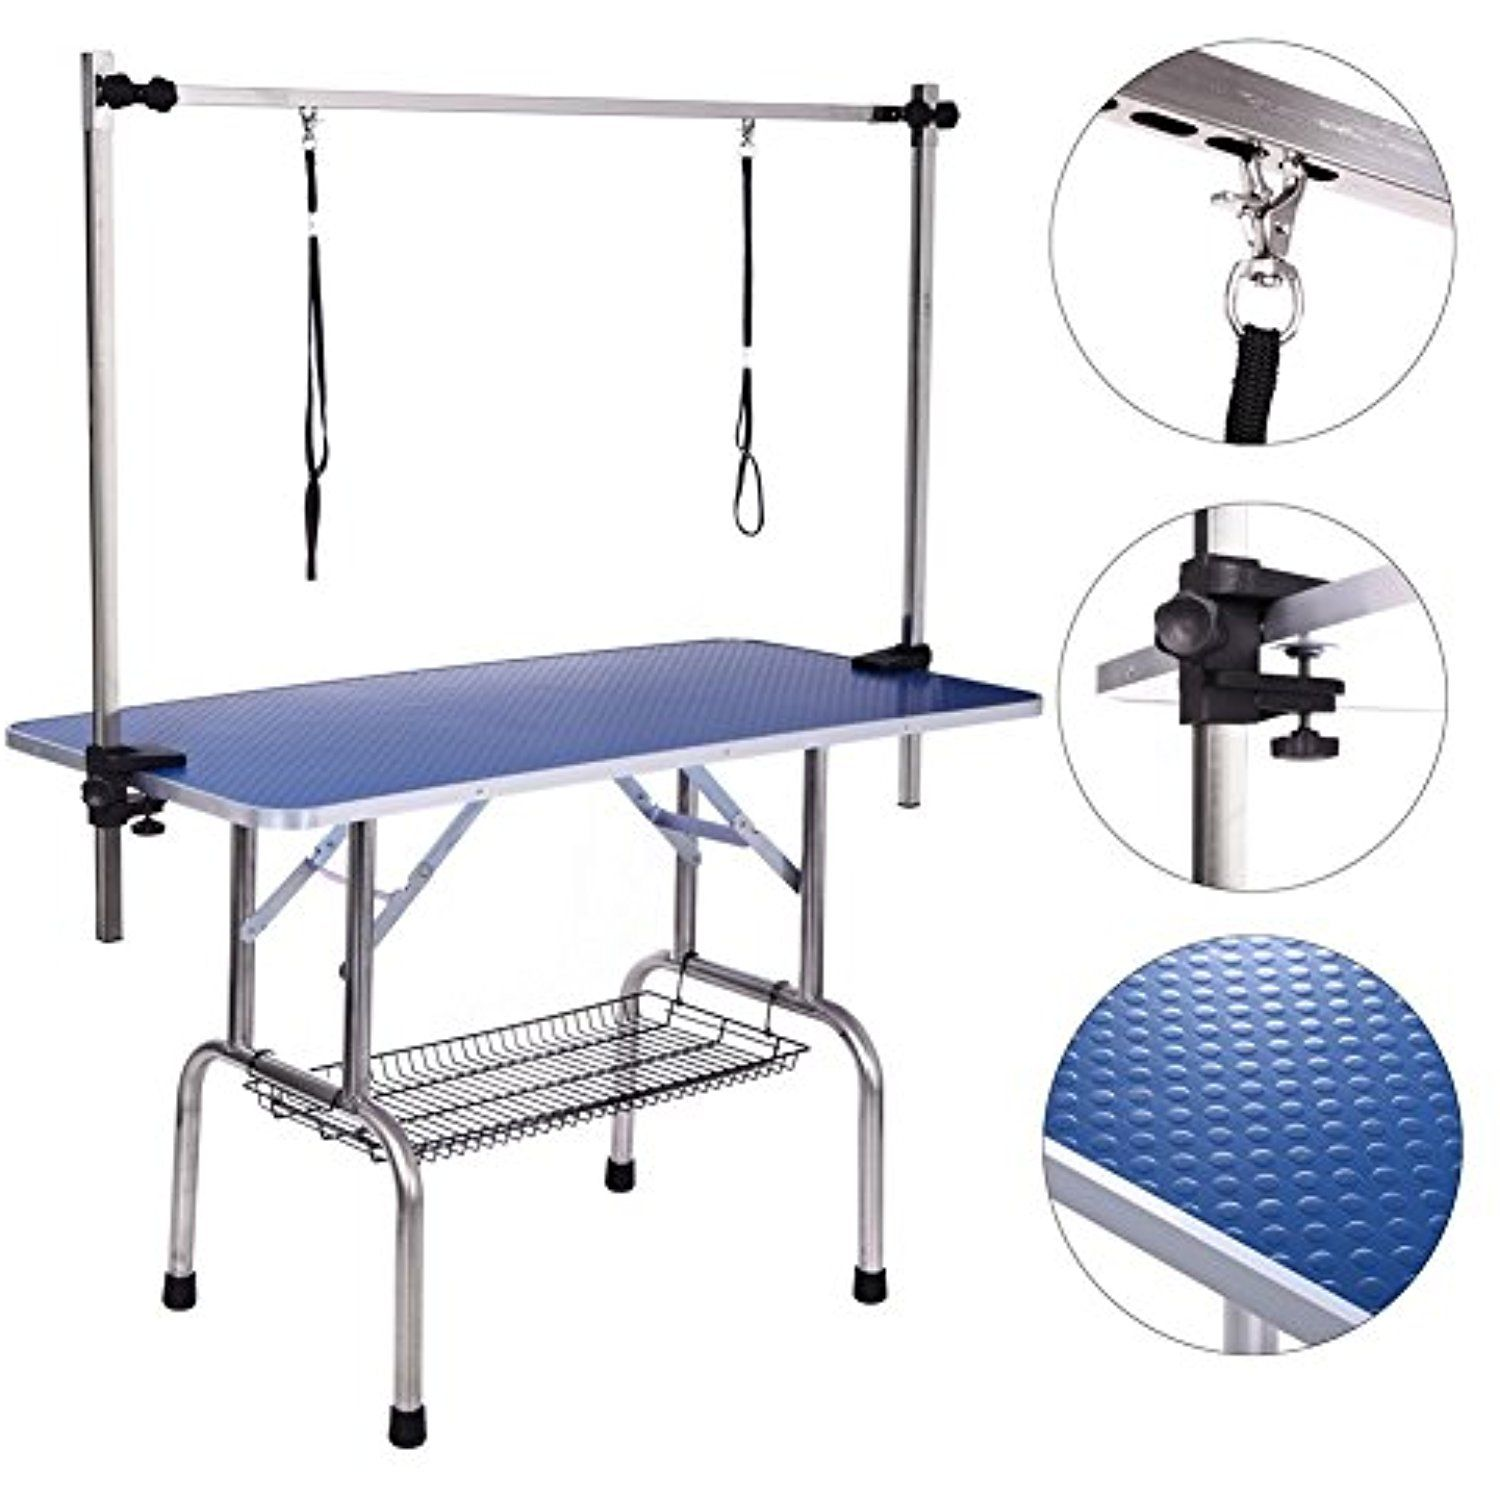 Dog Grooming Table Adjustable Clamp Overhead Pet Grooming Arm With Double Grooming Loop 36 By 24 See Th Dog Grooming Pet Grooming Dog Washing Station